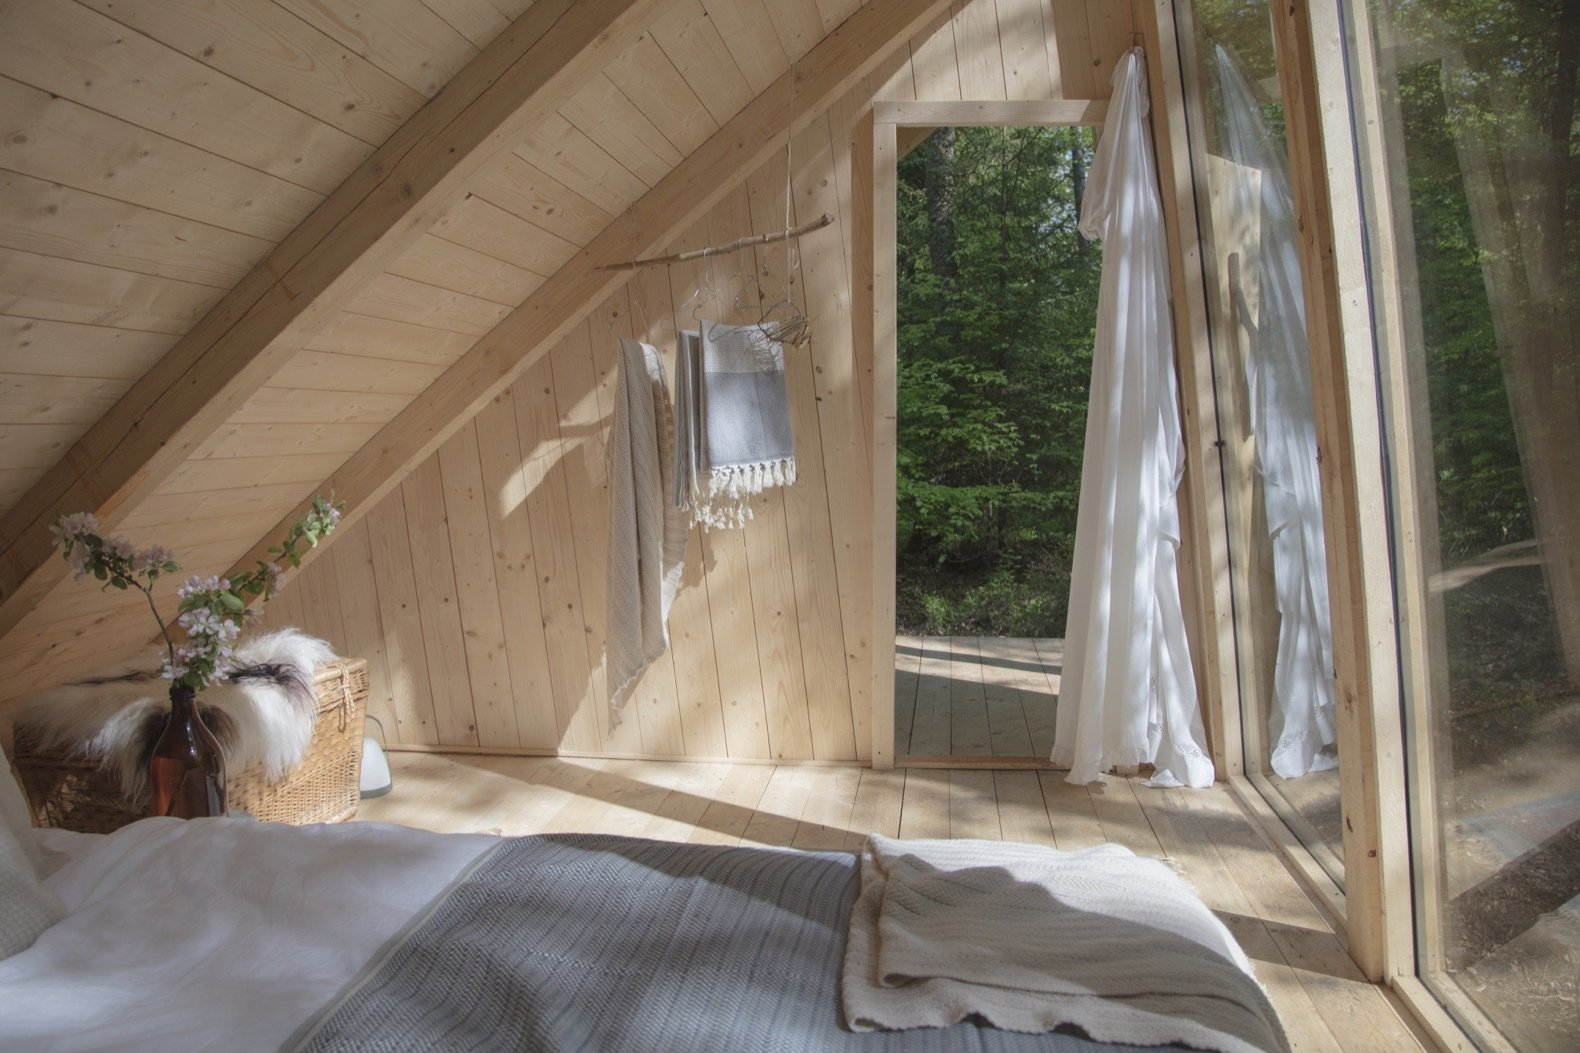 Bedroom, Light Hardwood Floor, and Bed The lodging interiors have been dressed in organic bed linen with large comfortable beds, beautiful handcrafted and recycled furnishings, and wood-fired stoves.    Photo 12 of 18 in This Swedish Permaculture Retreat Is a Foodie's Paradise